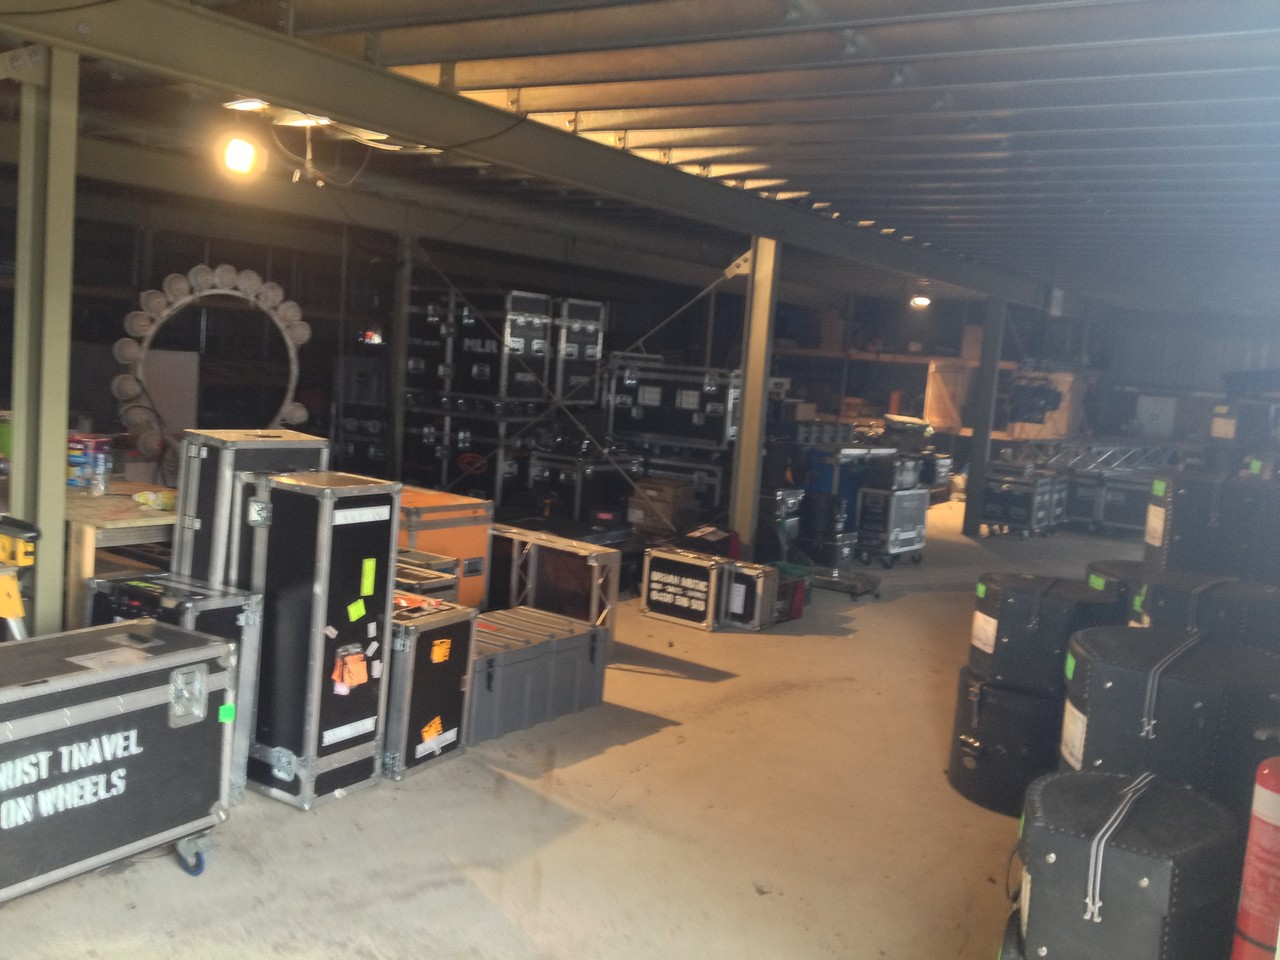 Under the stage there is a treasure trove of gear ...